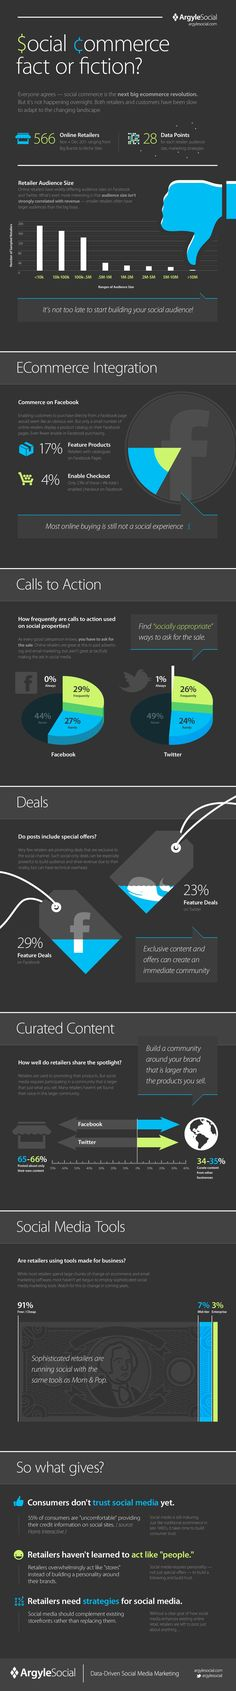 Facebook, Twitter And The State Of Social Commerce #infographic